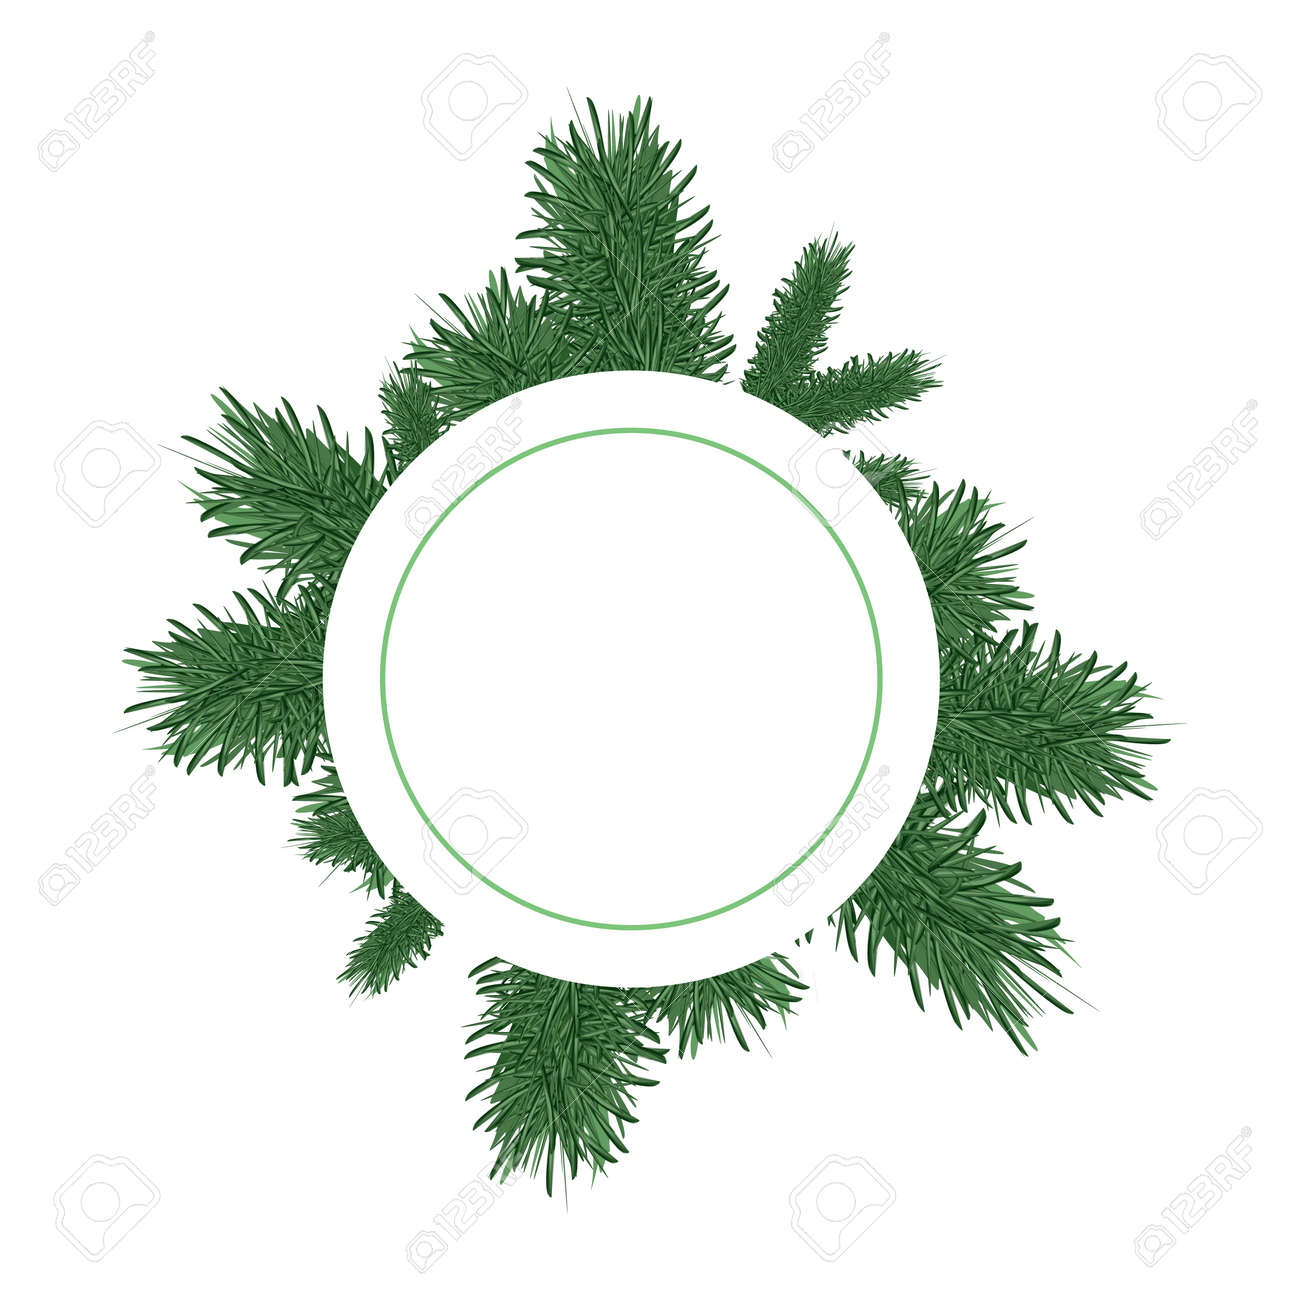 Christmas Branch Vector.Christmas Tree Branches Vector Background Transparent Illustration